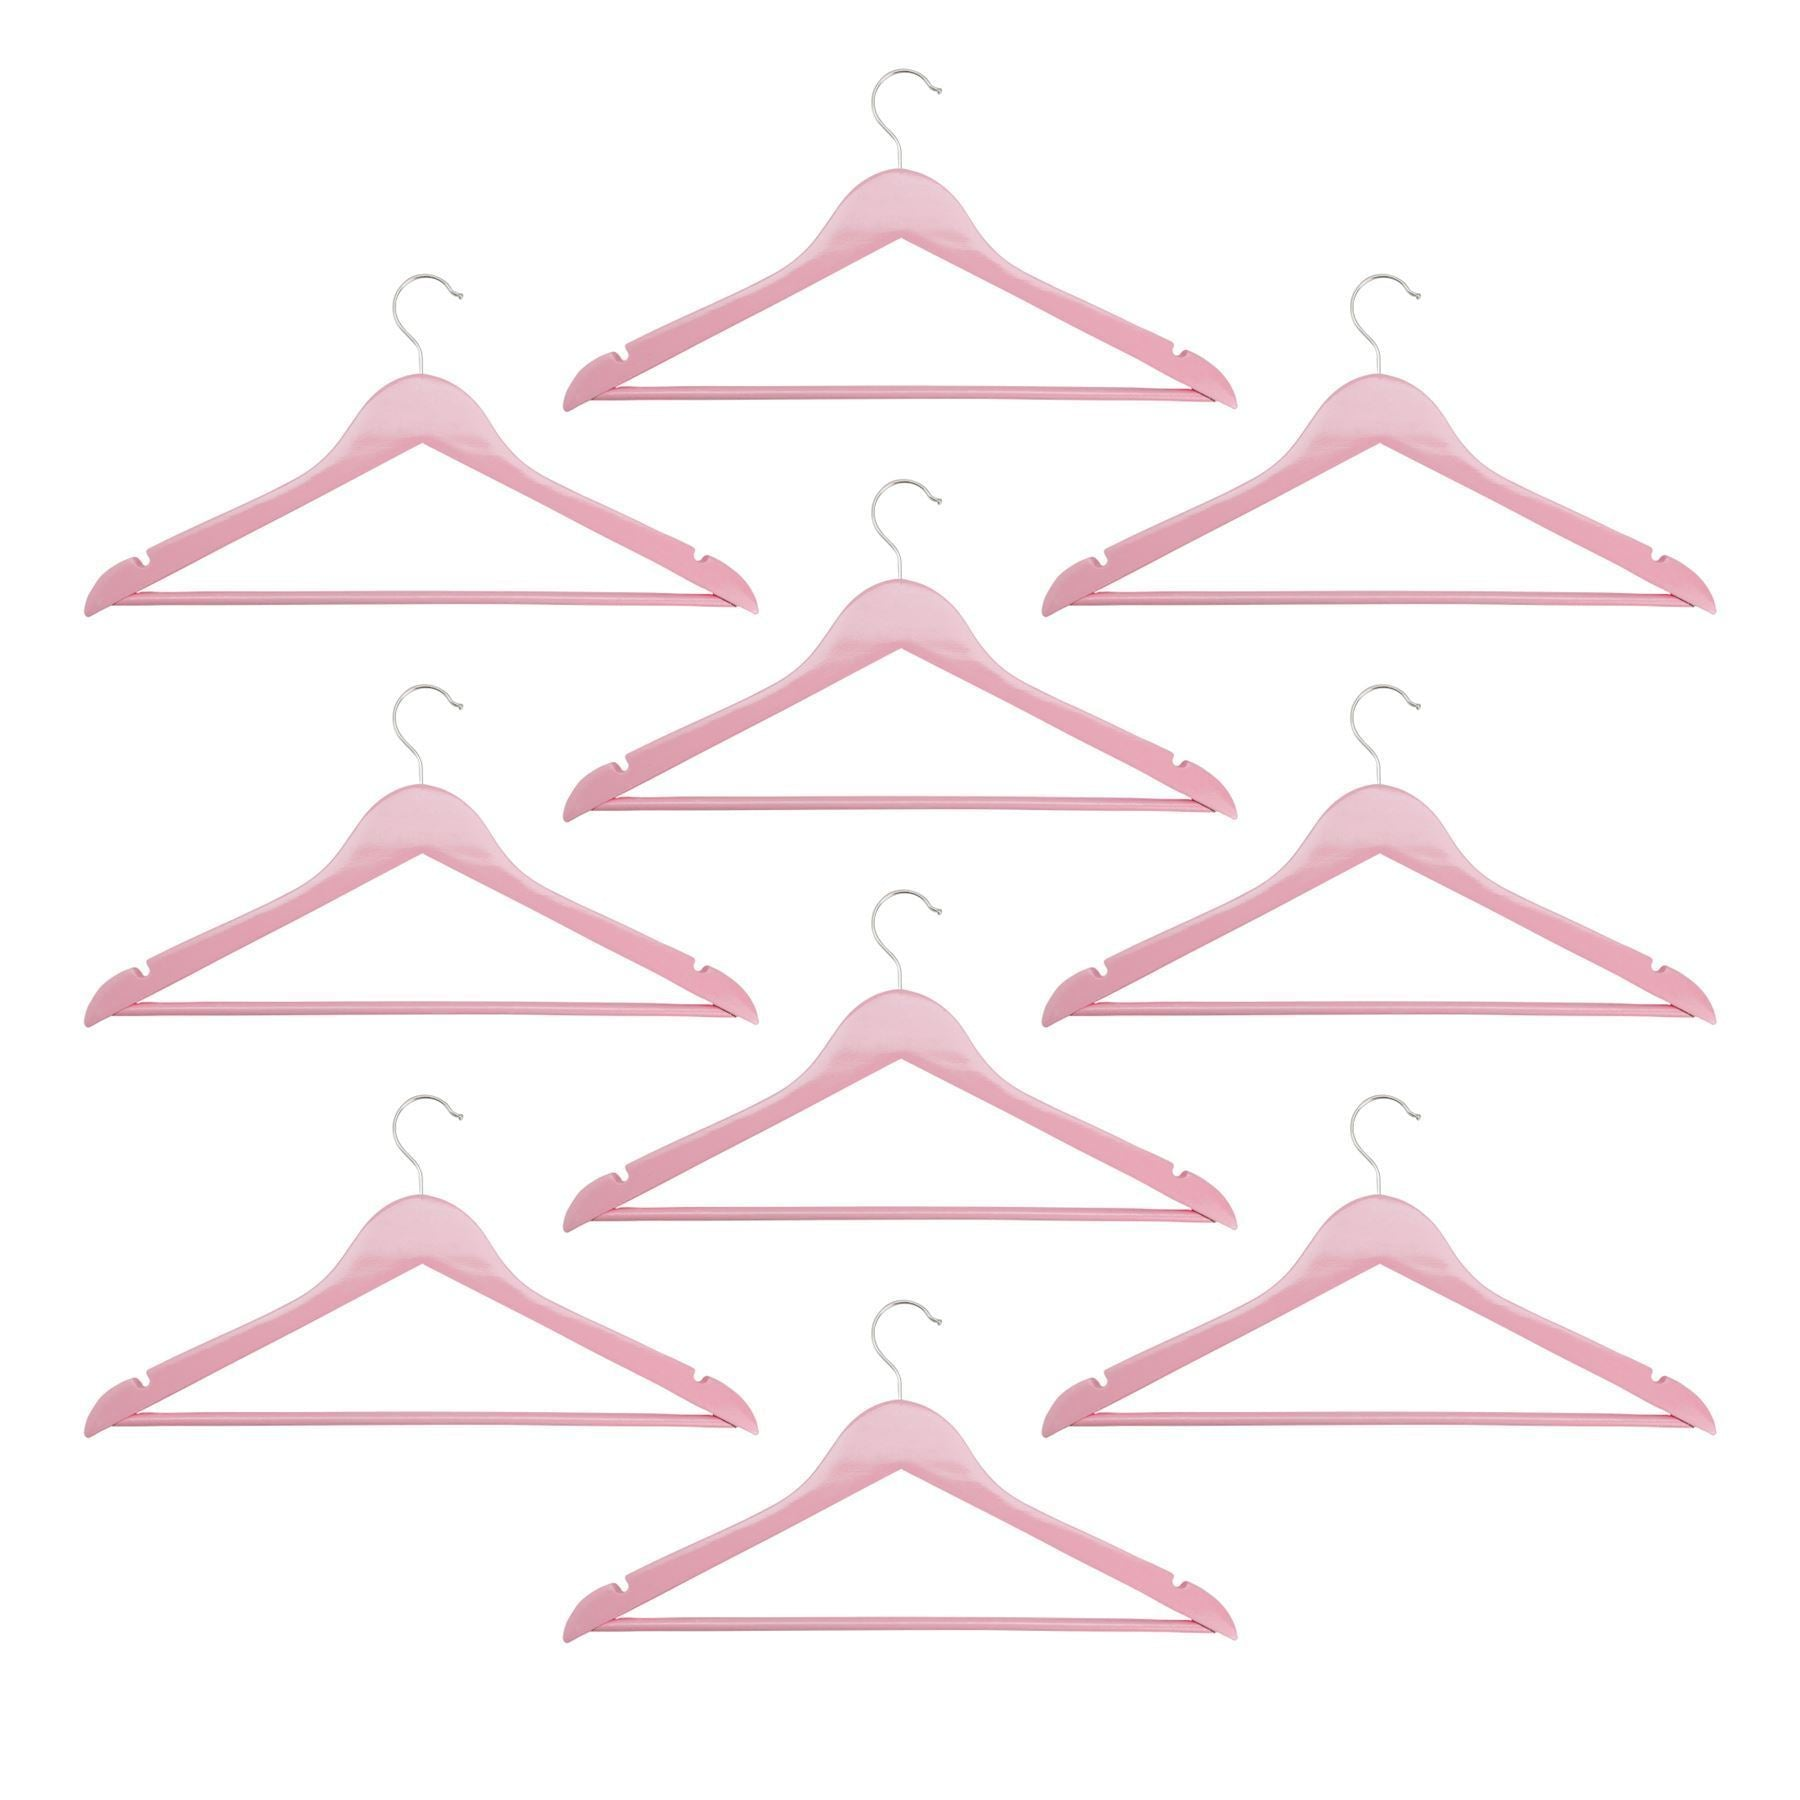 Harbour Housewares Wooden Clothes Hangers - Pastel Pink - Pack of 10